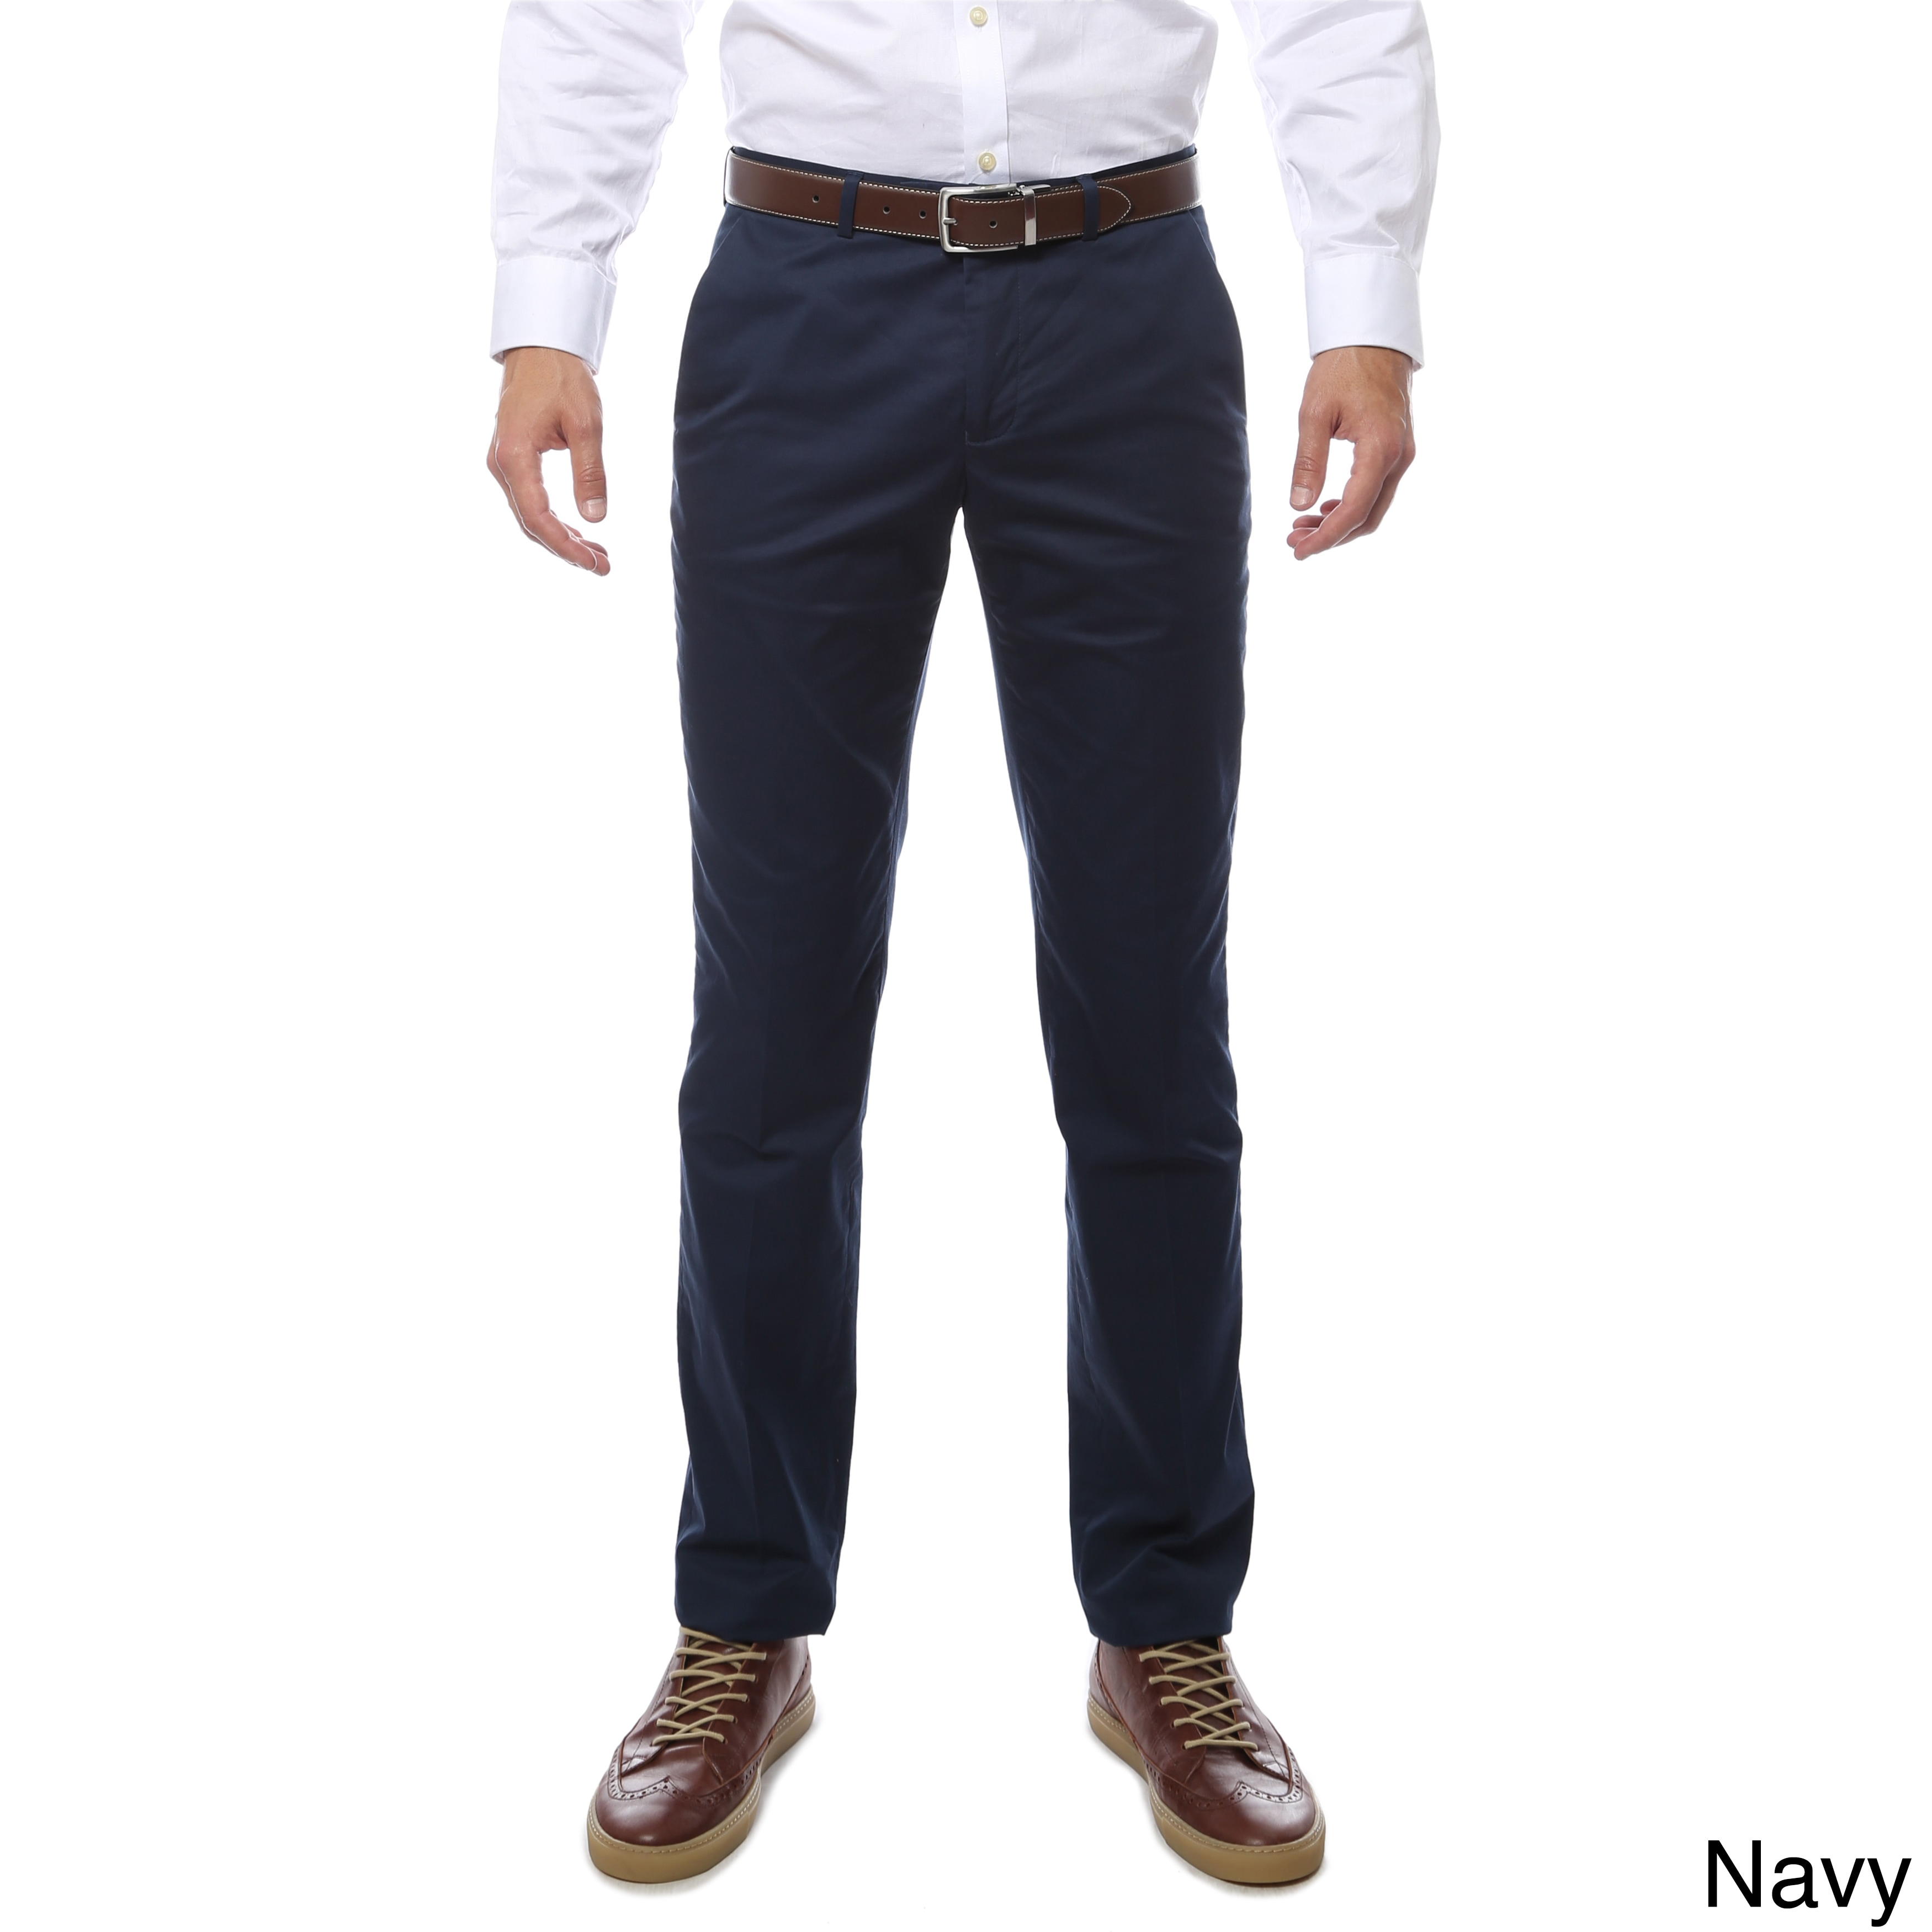 b0ccb5805ea Shop Zonettie by Ferrecci Cotton Spandex Straight-leg Business-casual Chino  Pants - Free Shipping On Orders Over  45 - Overstock - 12384834